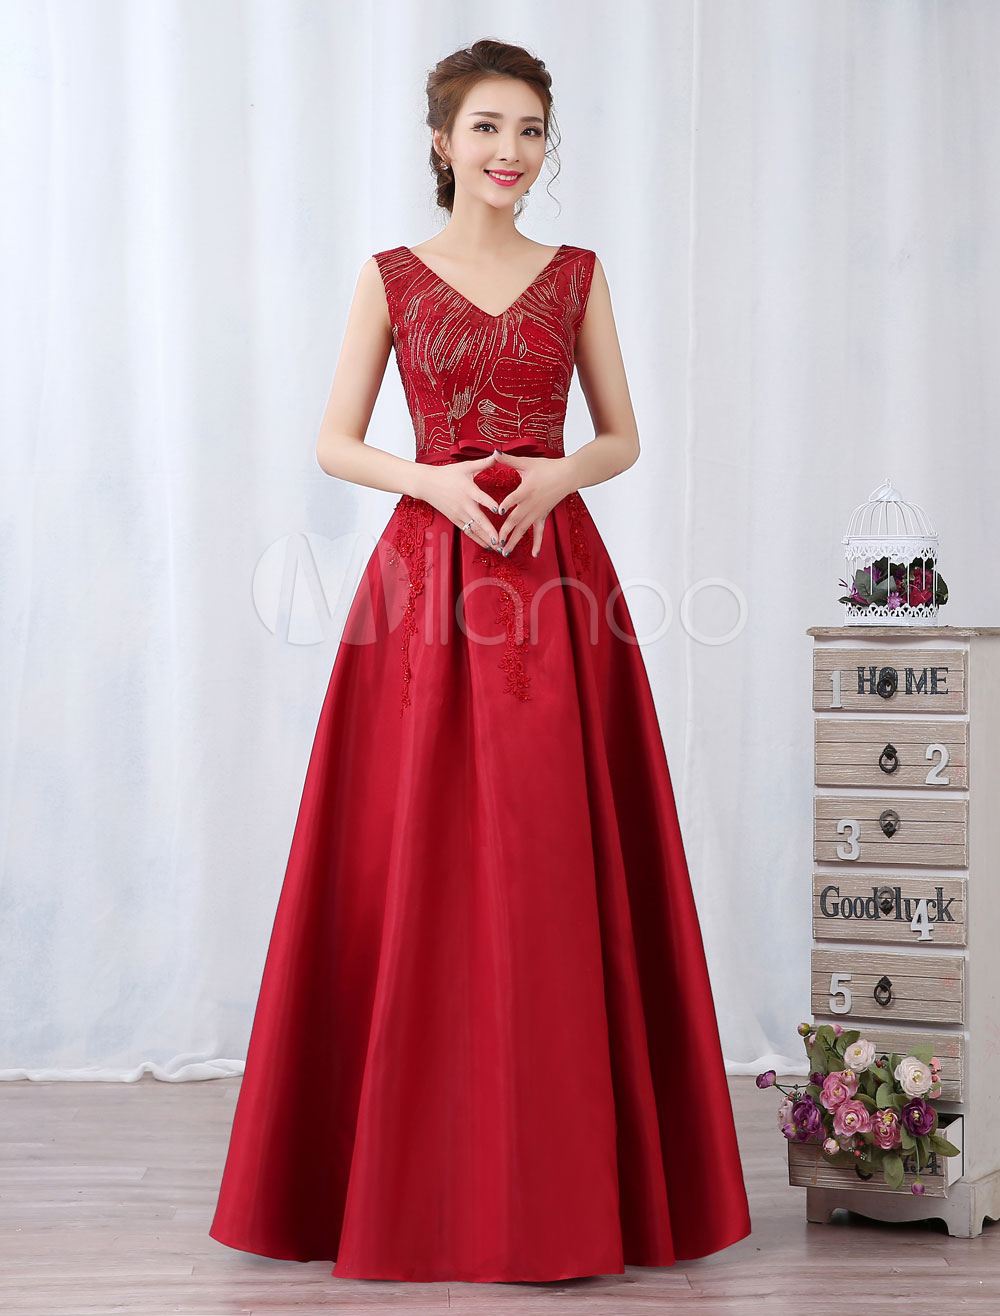 Red Evening Dress Satin V Neck Prom Dress Beaded Bow Sash Sleeveless Formal Gown (Wedding Cheap Party Dress) photo